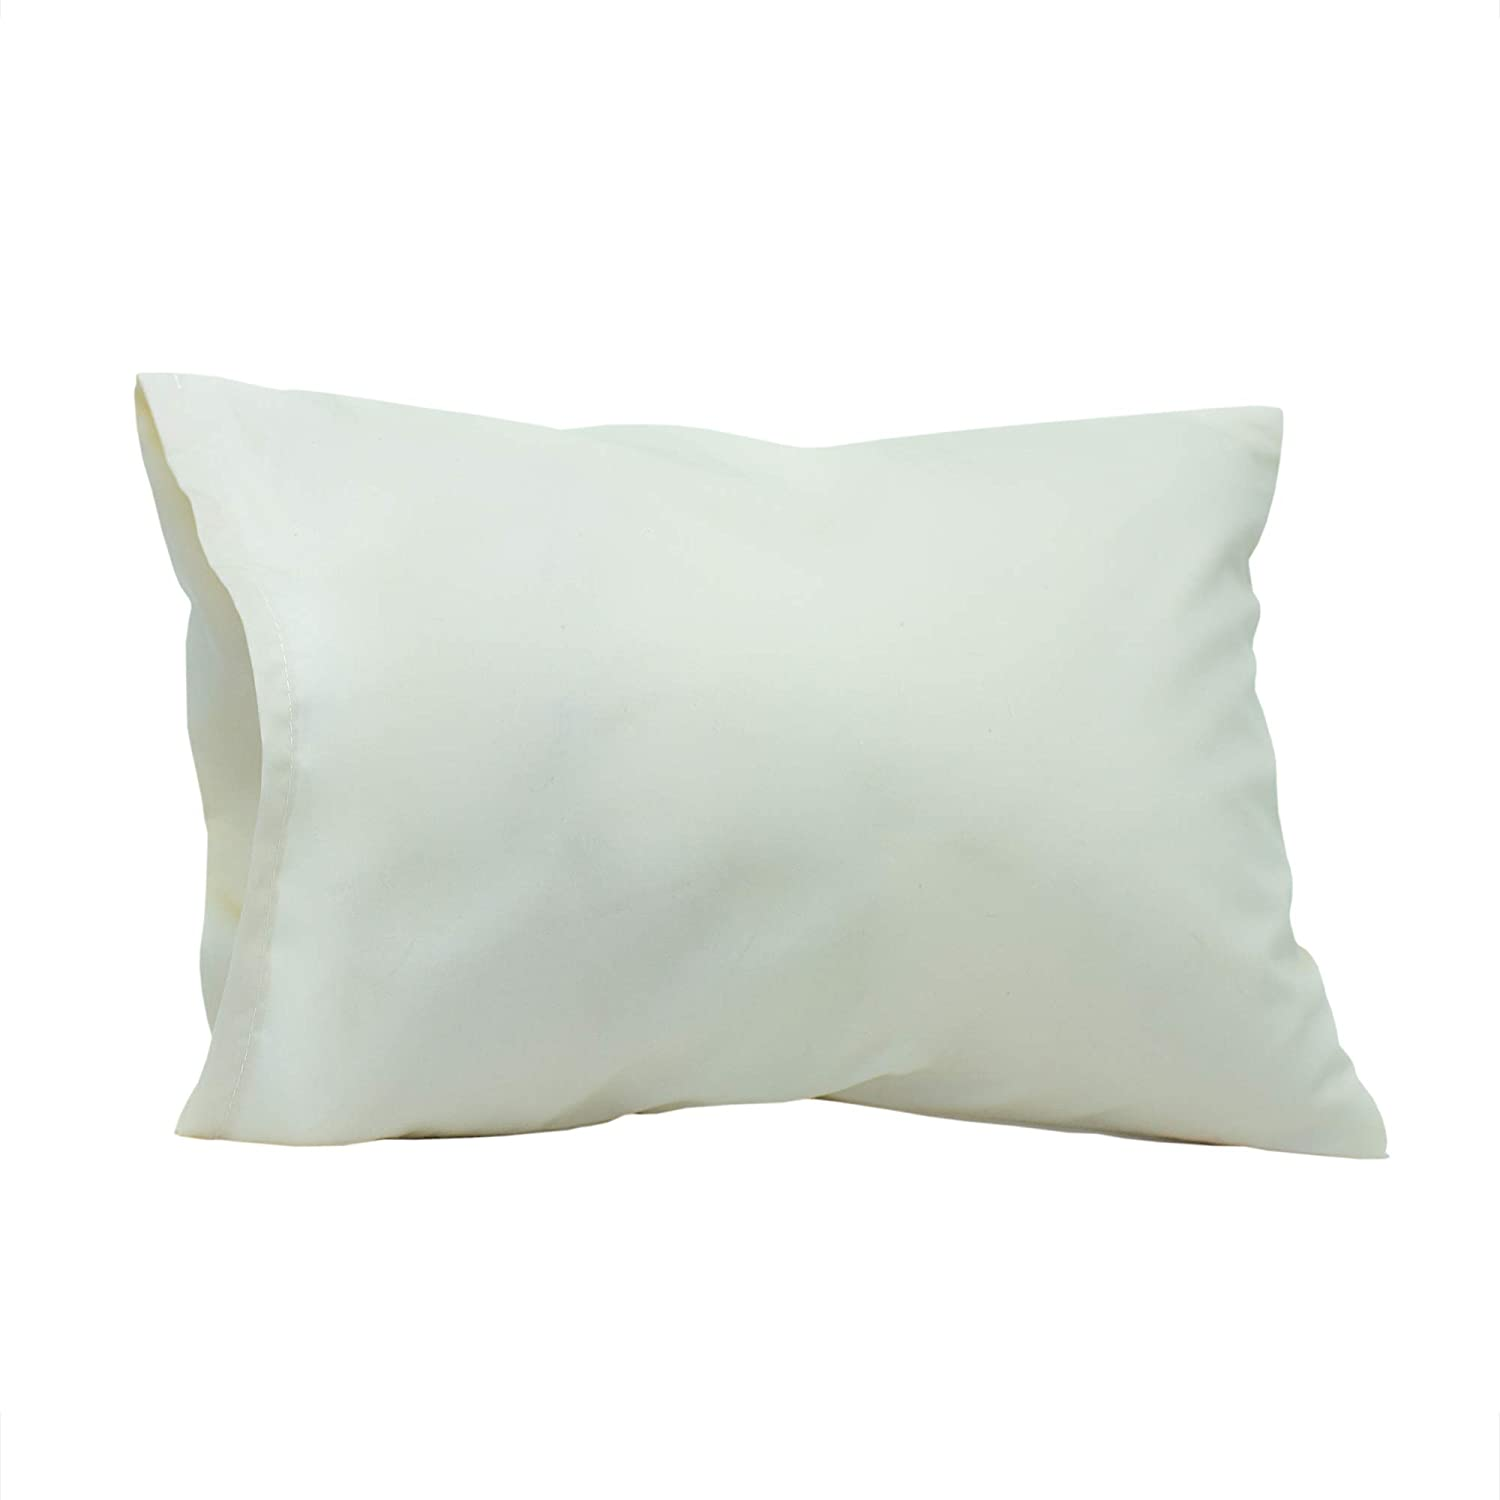 Golden Down Travel and Camping Pillow (Microfiber)